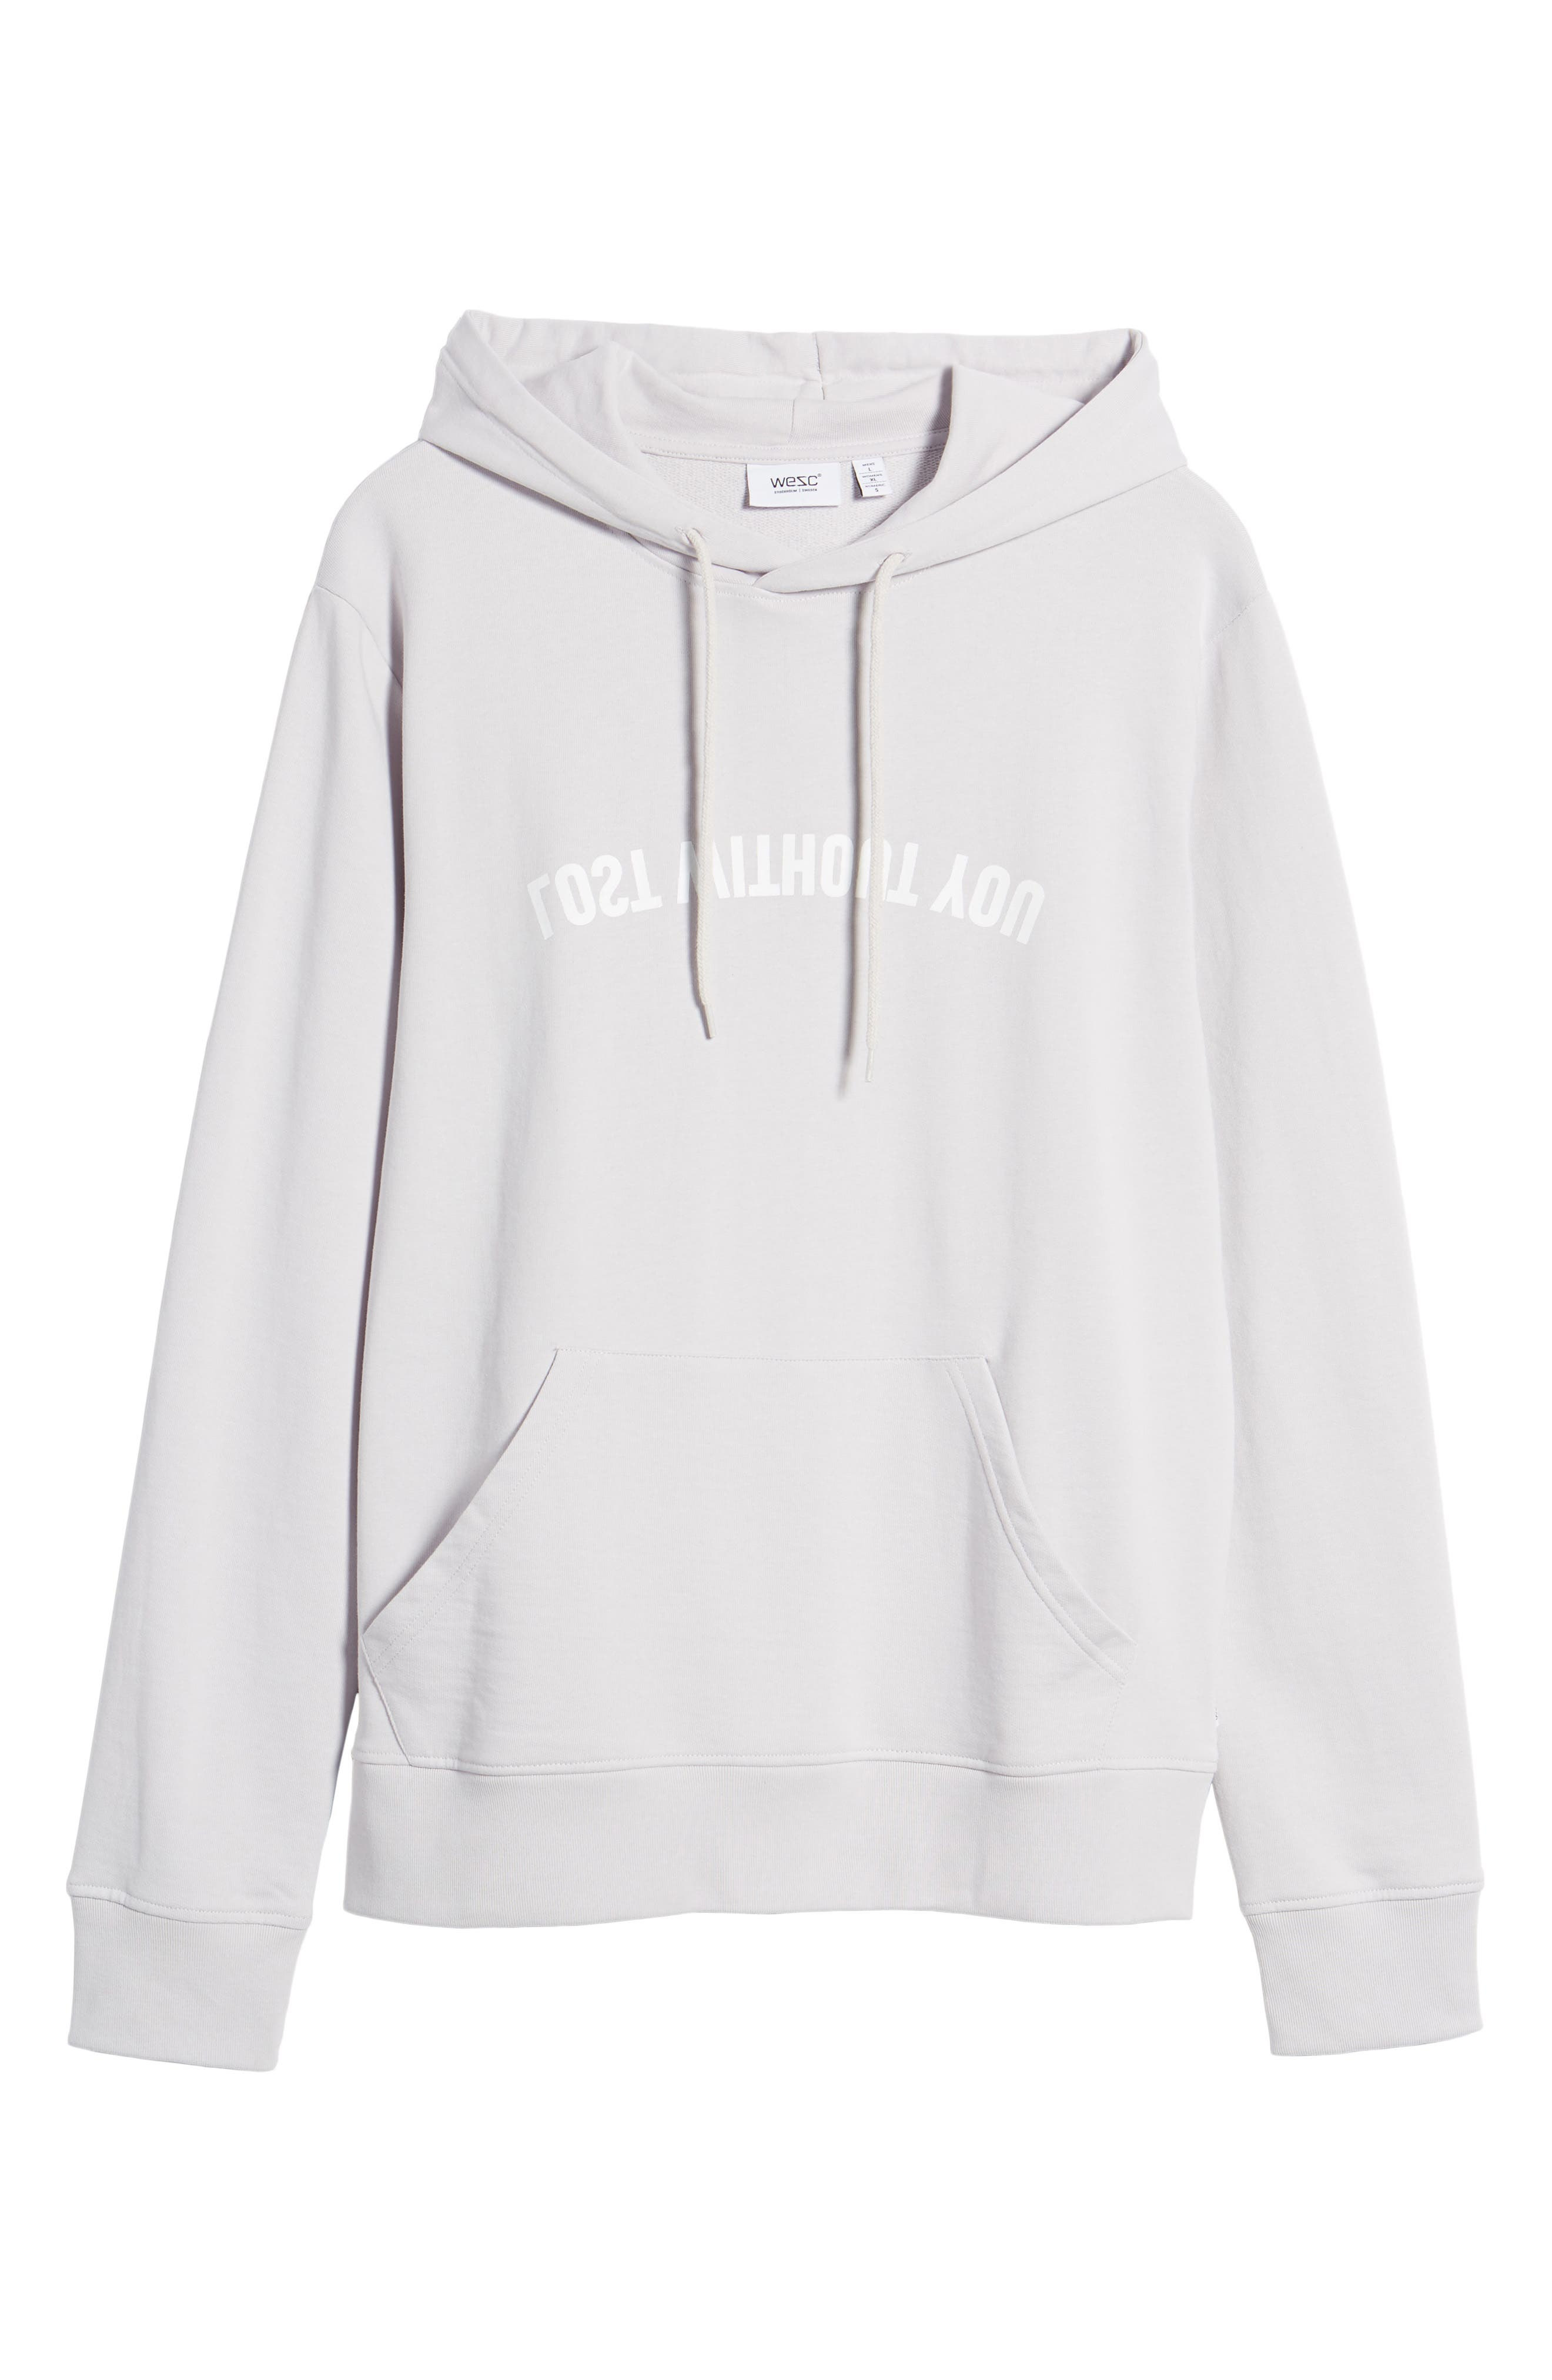 Mike Mirror Graphic Hoodie,                             Alternate thumbnail 6, color,                             Light Lilac